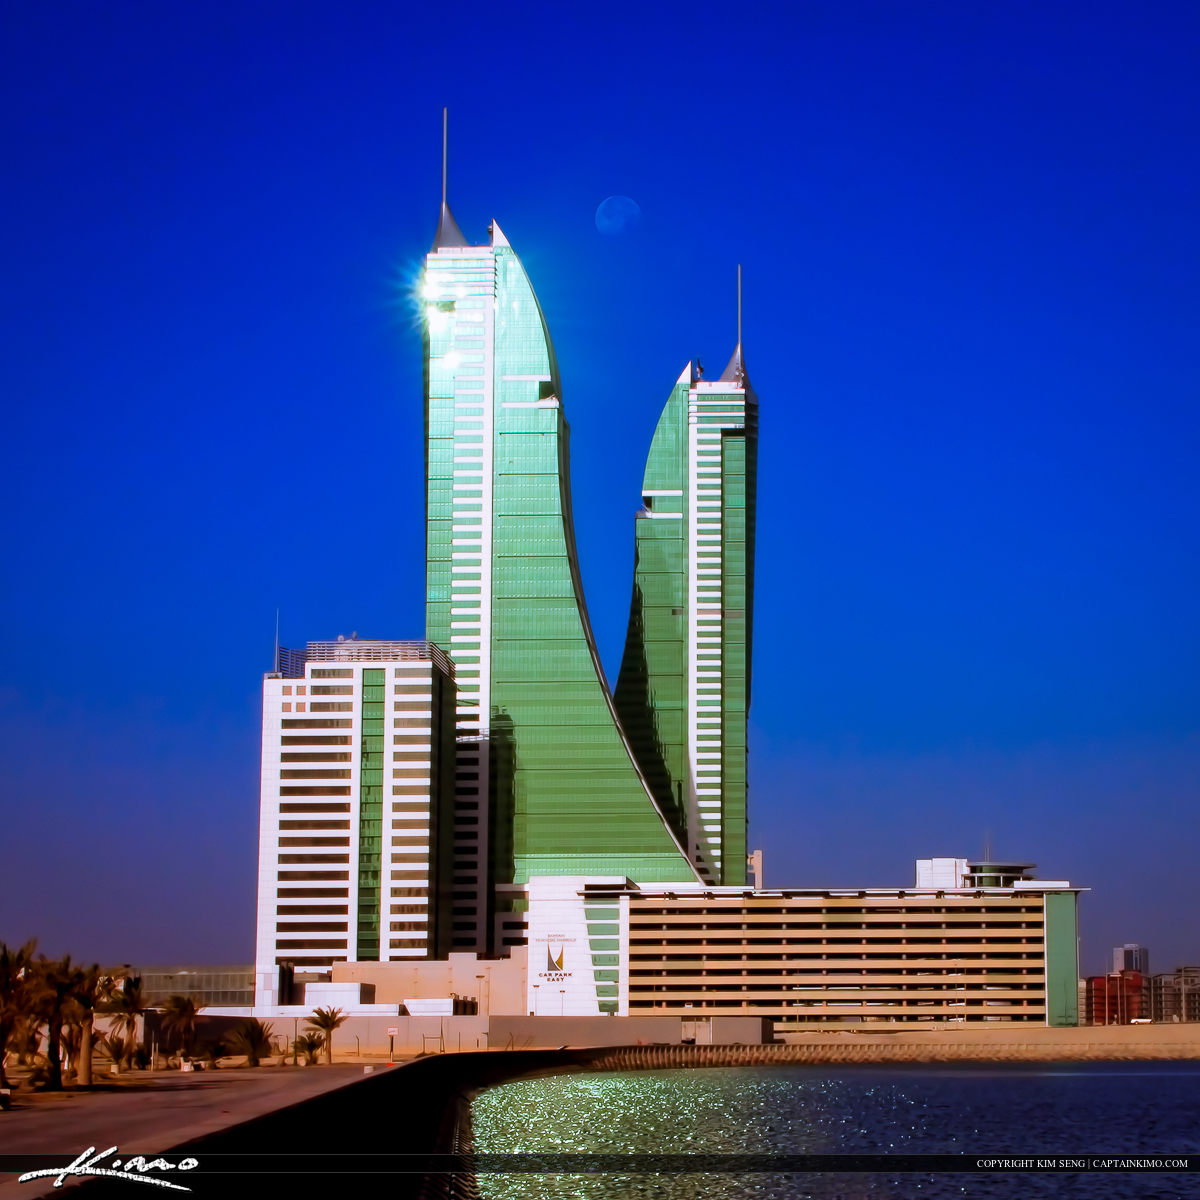 Bahrain Financial Harbour Twin Architectural Buildings at Moon Set